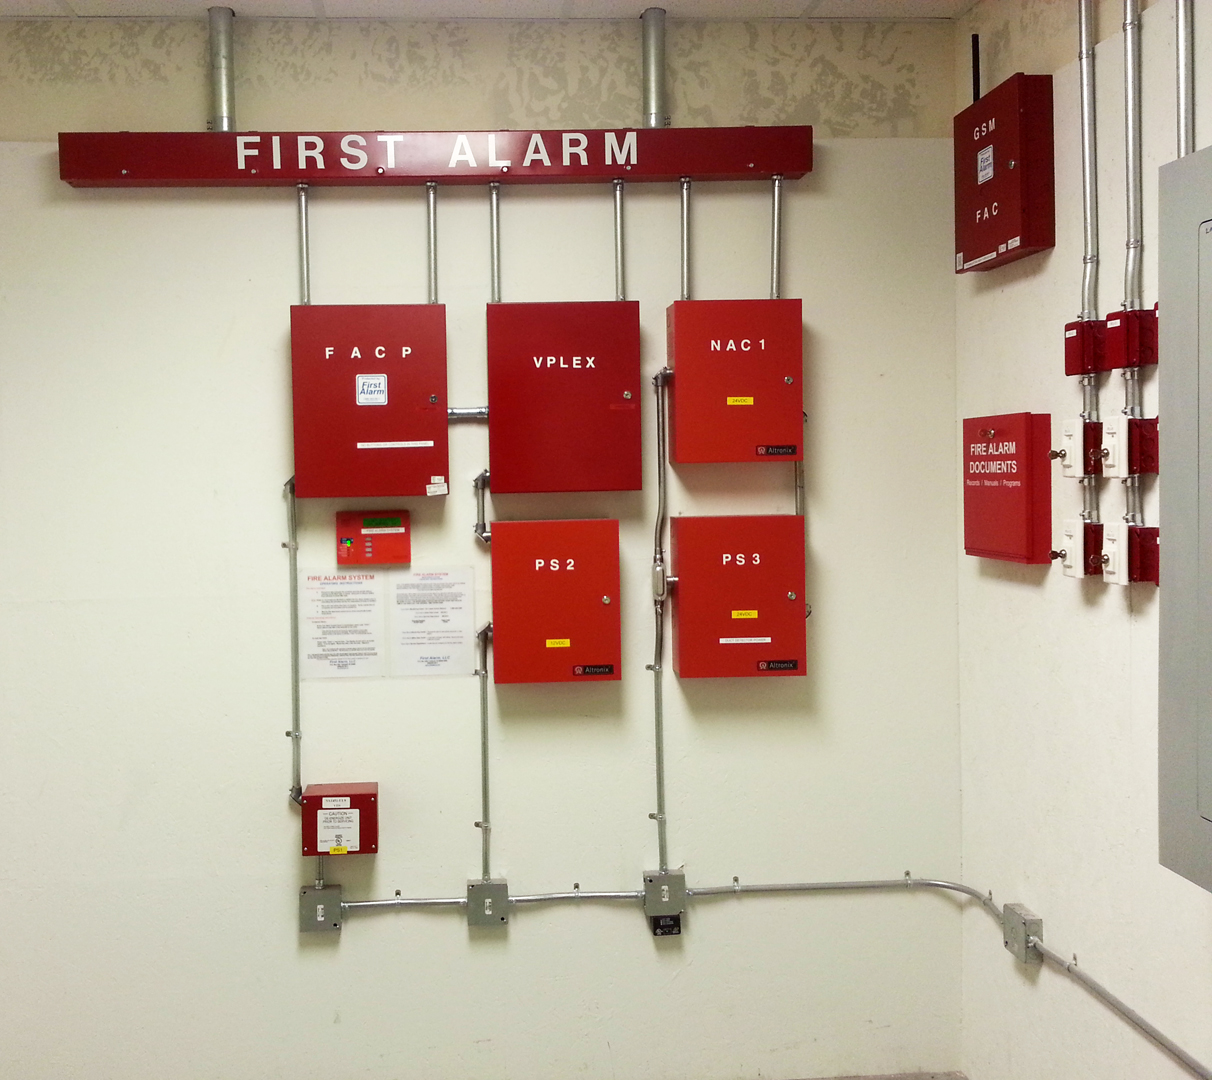 First Alarm Fire Alarm Systems